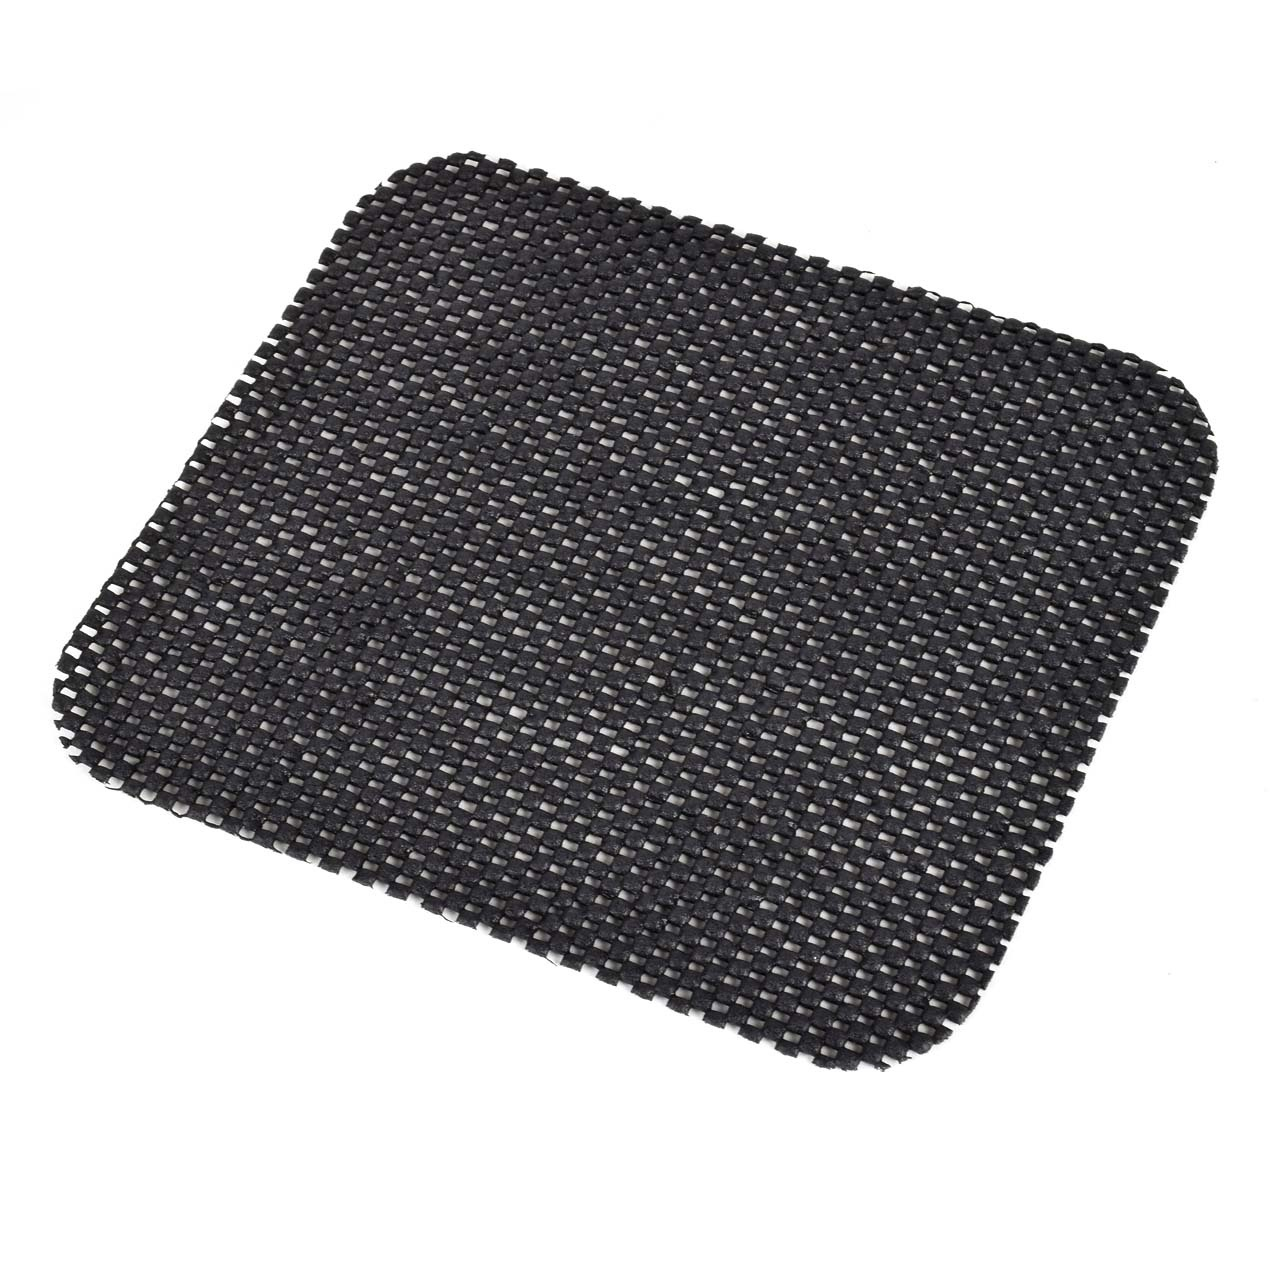 modern bowls promotionshop for promotional modern bowls on  - weave placemat fashion pvc dining table mat disc pads bowl pad coastersinsulation table cloth pad slipresistant pad